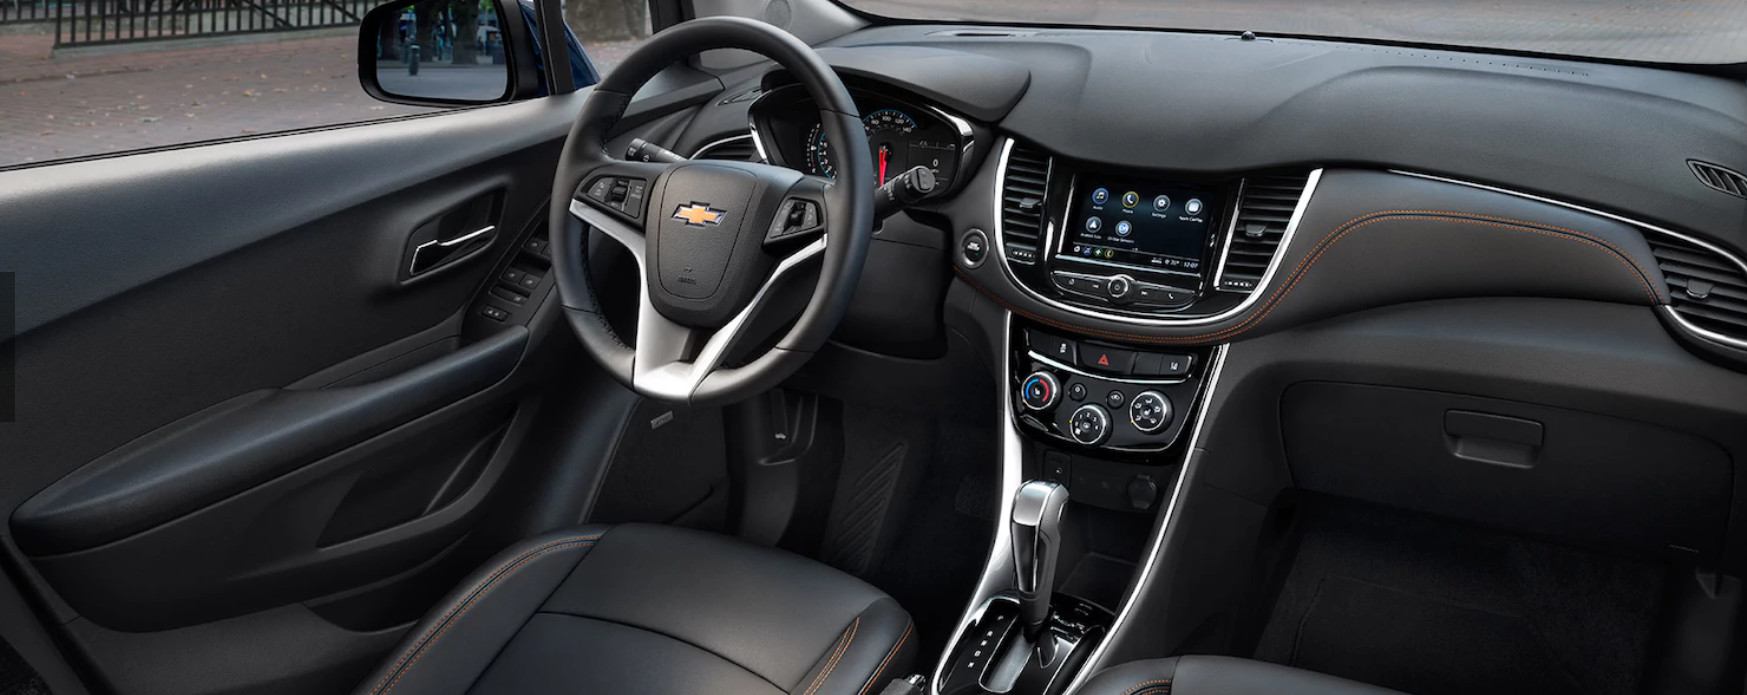 2018 Chevrolet Trax For Sale In Sylvania Oh Dave White Chevrolet